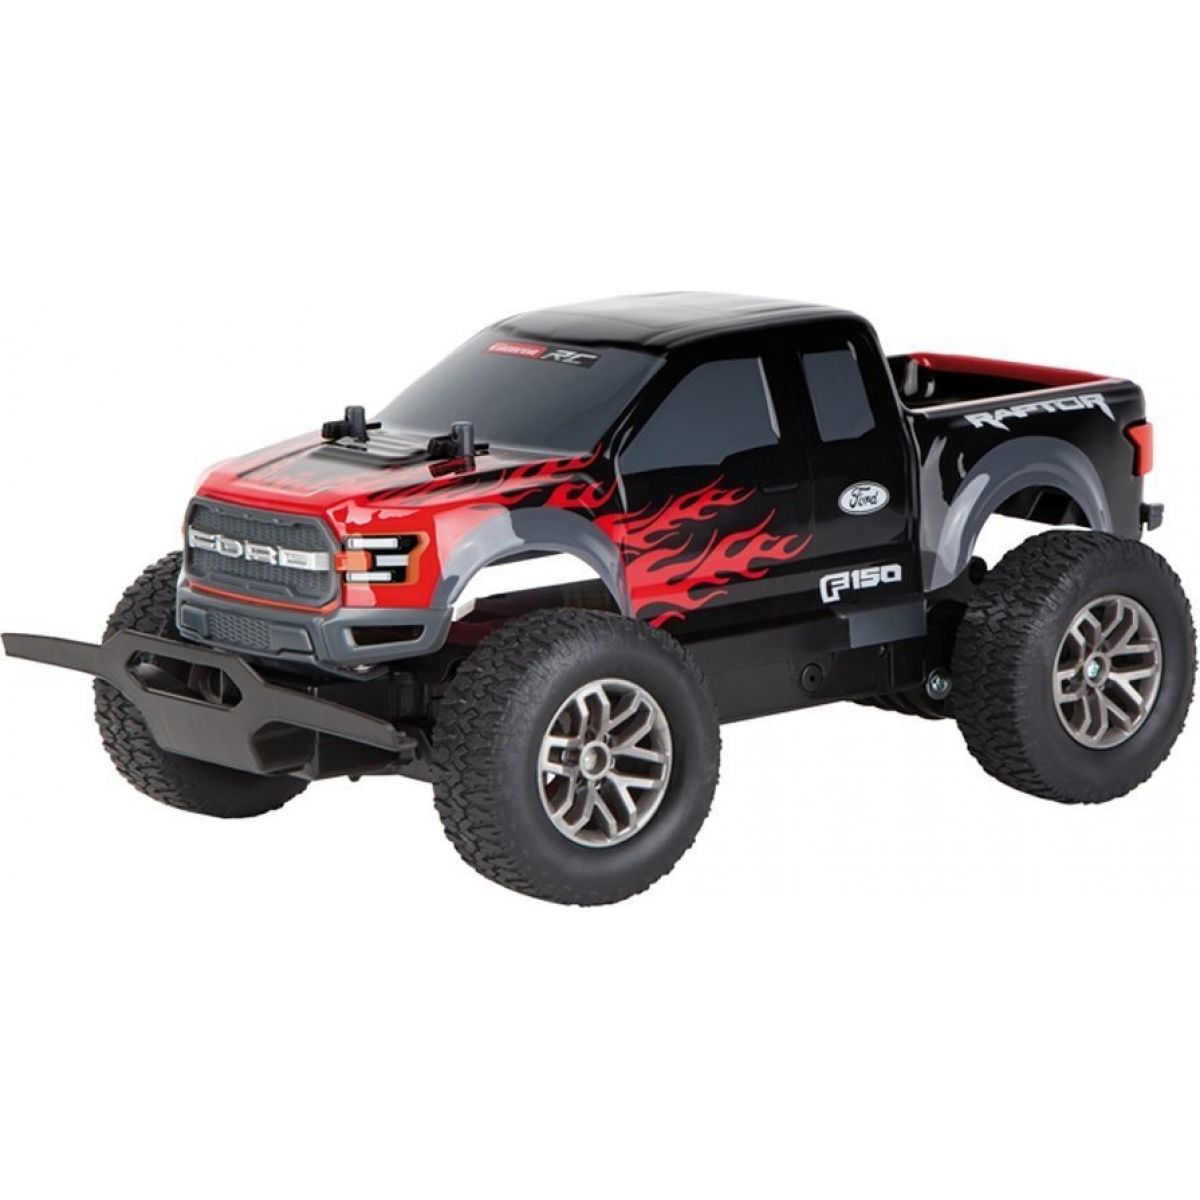 Carrera RC auto Ford F-150 Raptor 1:18